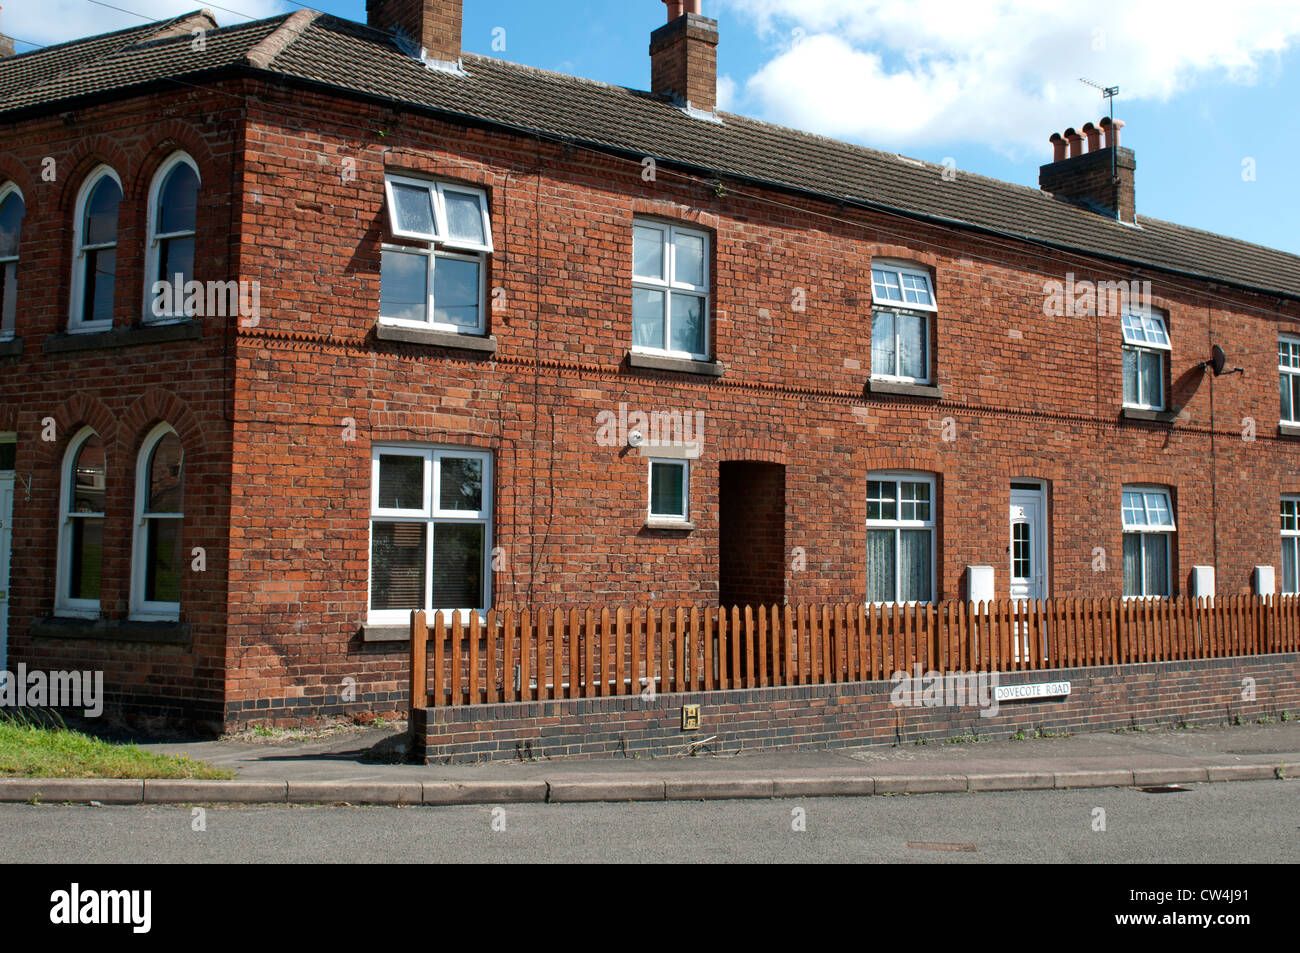 Terraced housing in Croft village, Leicestershire, UK - Stock Image